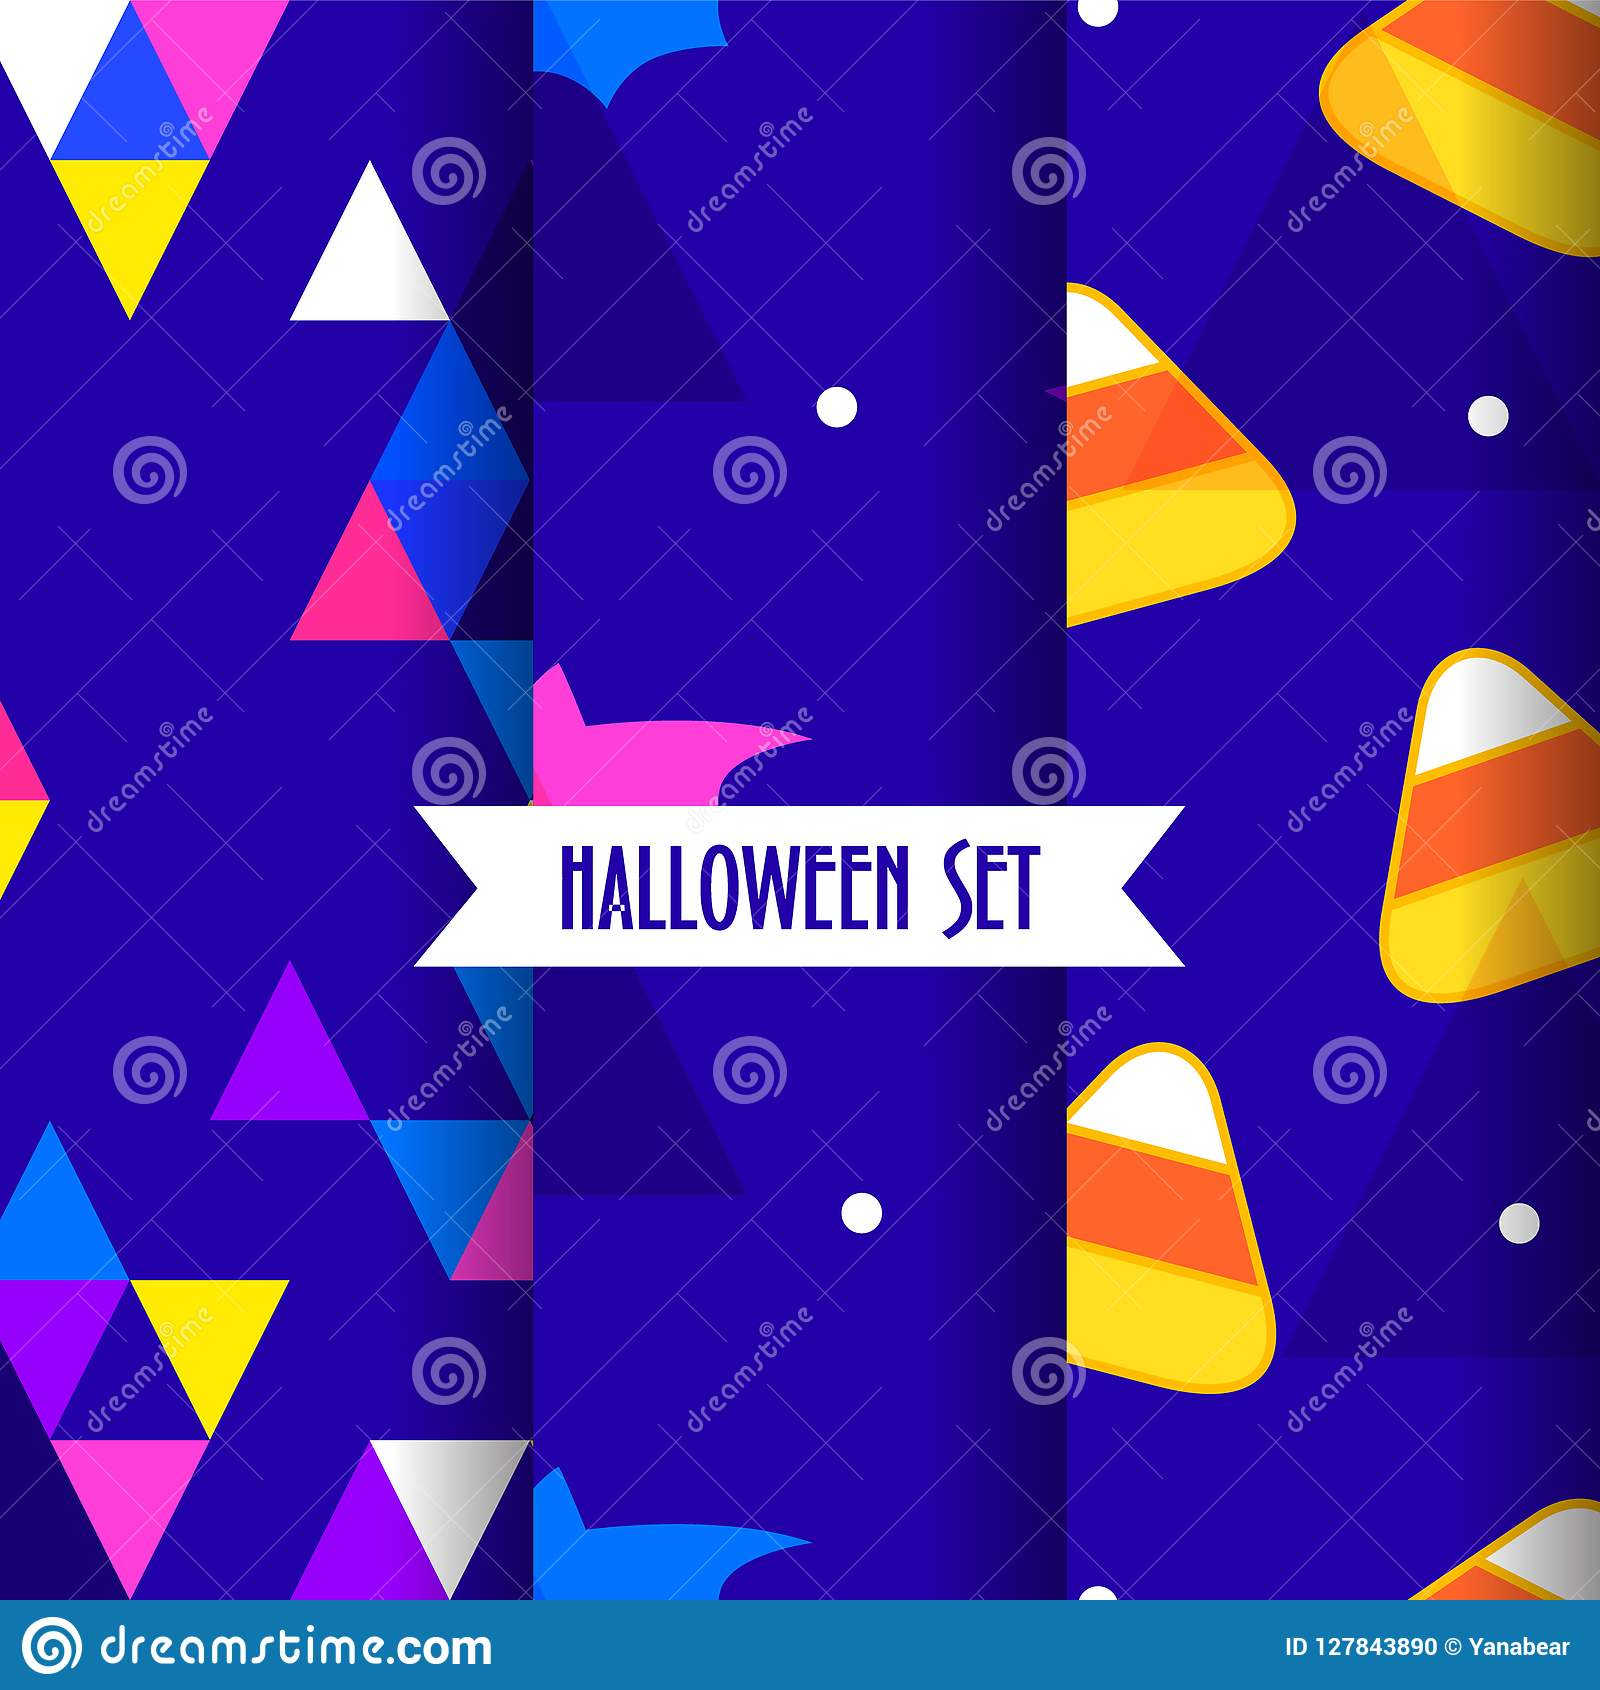 Set of cute halloween patterns with candy corns, bat and triangles on blue background.